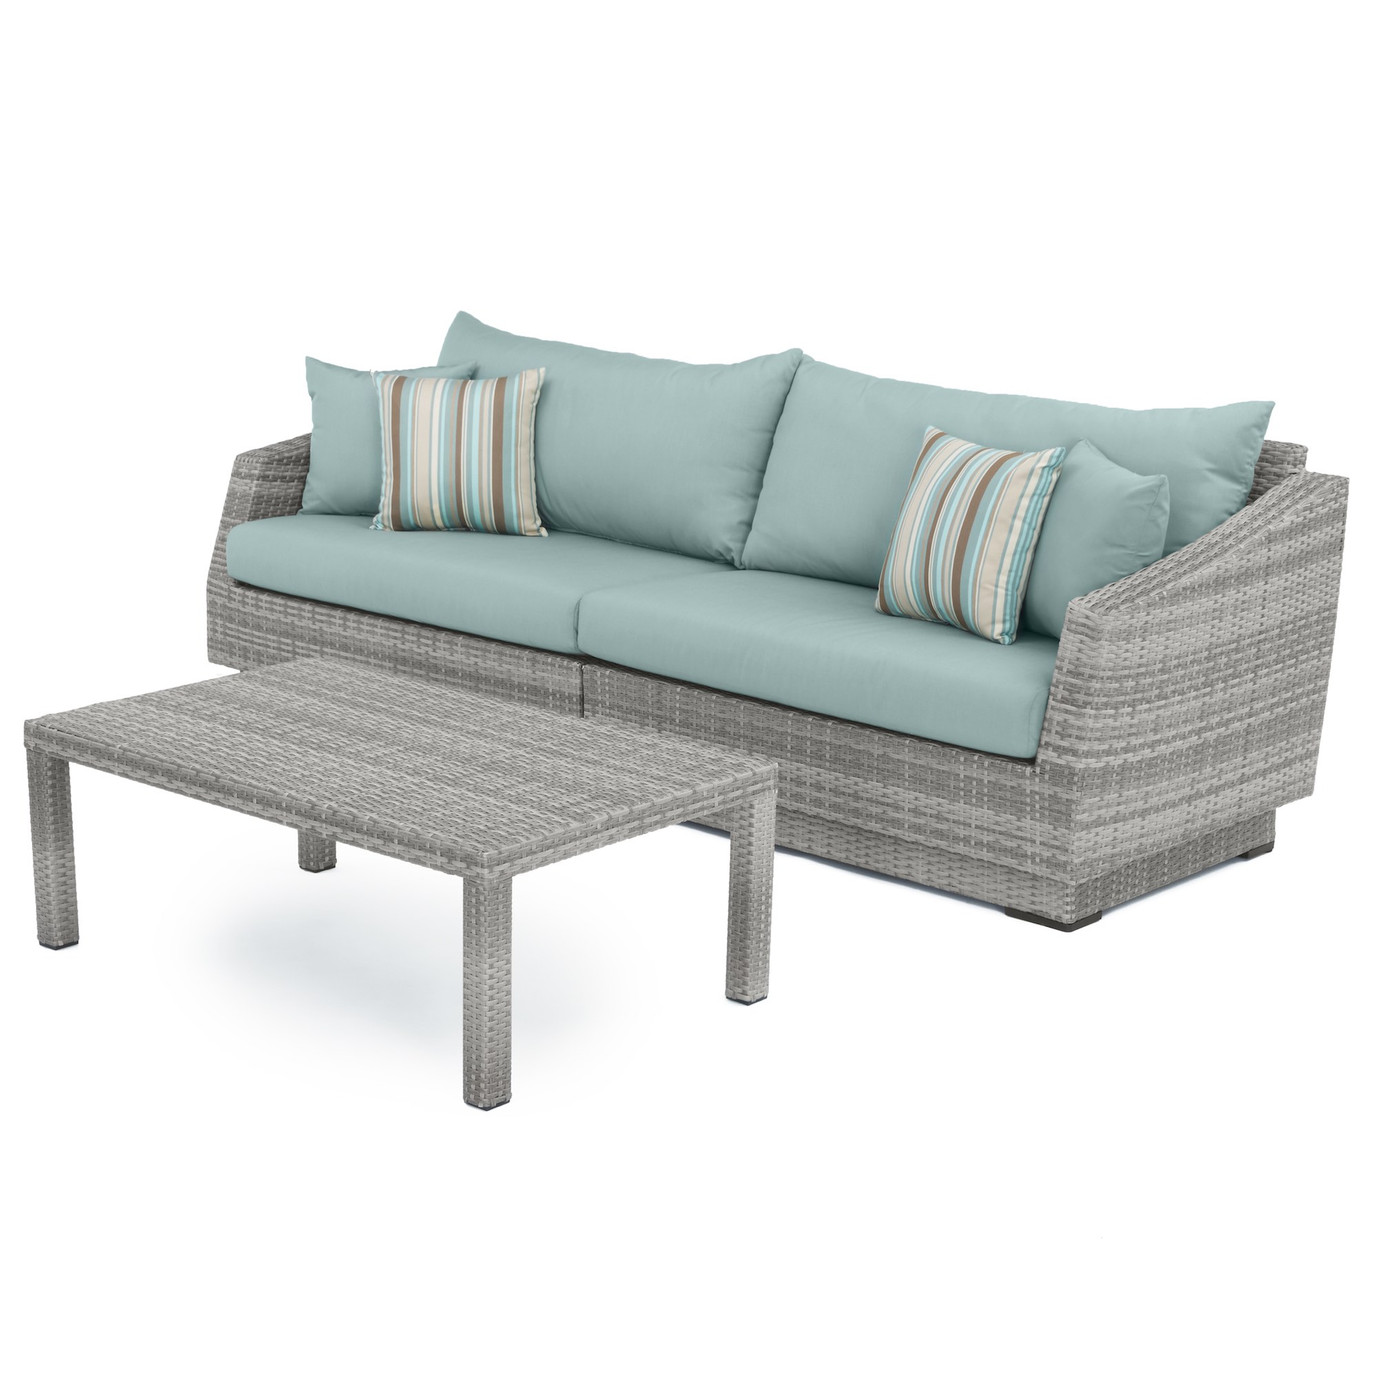 Cannes™ Sofa and Coffee Table - Bliss Blue